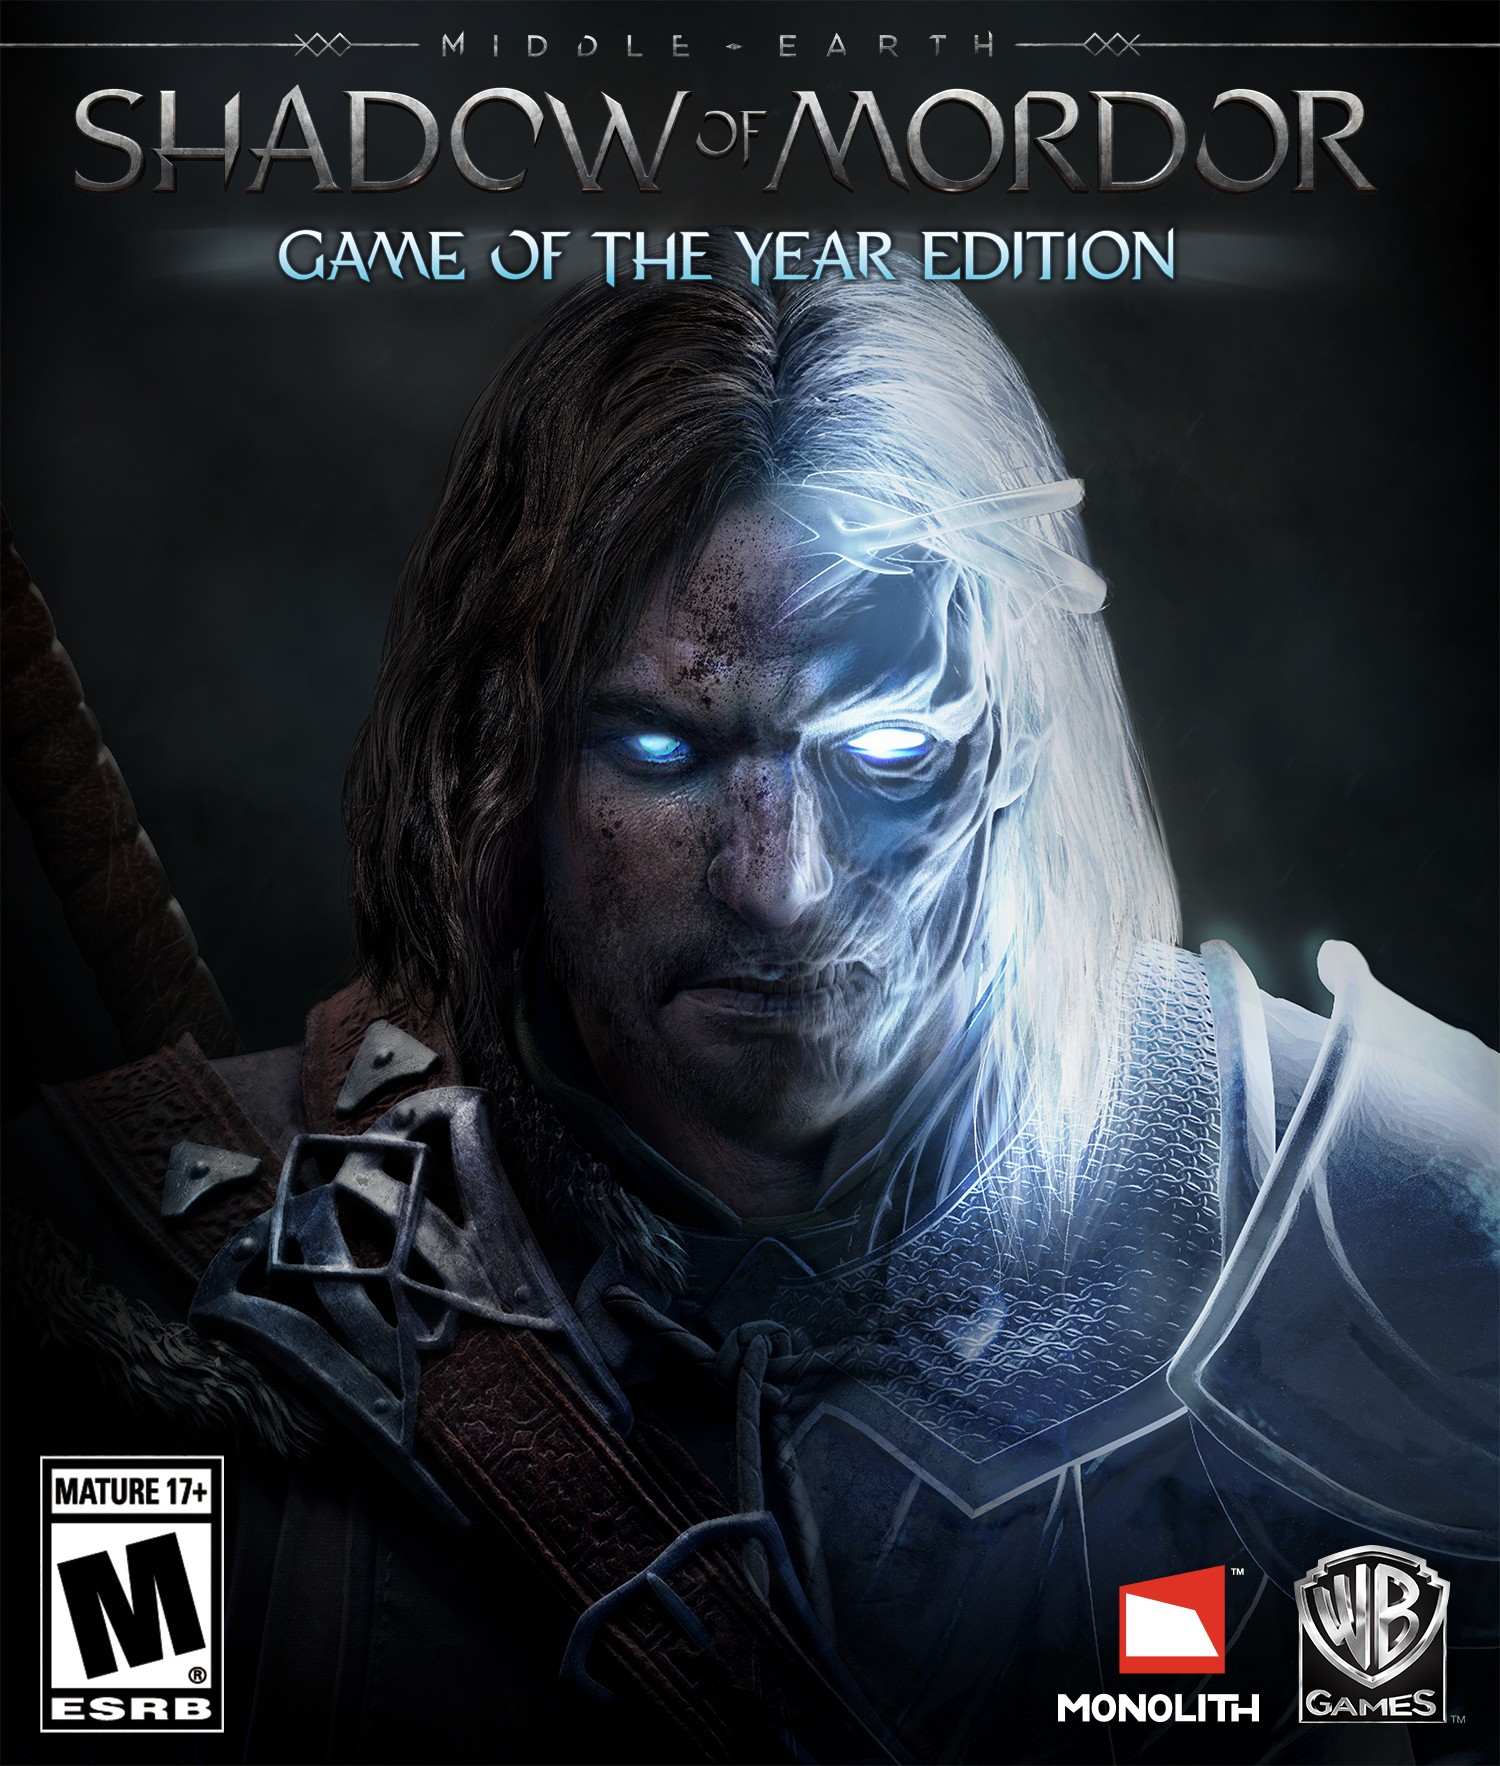 middle-earth-shadow-of-mordor-game-of-the-year-edition-arrives-on-may-5-479709-2